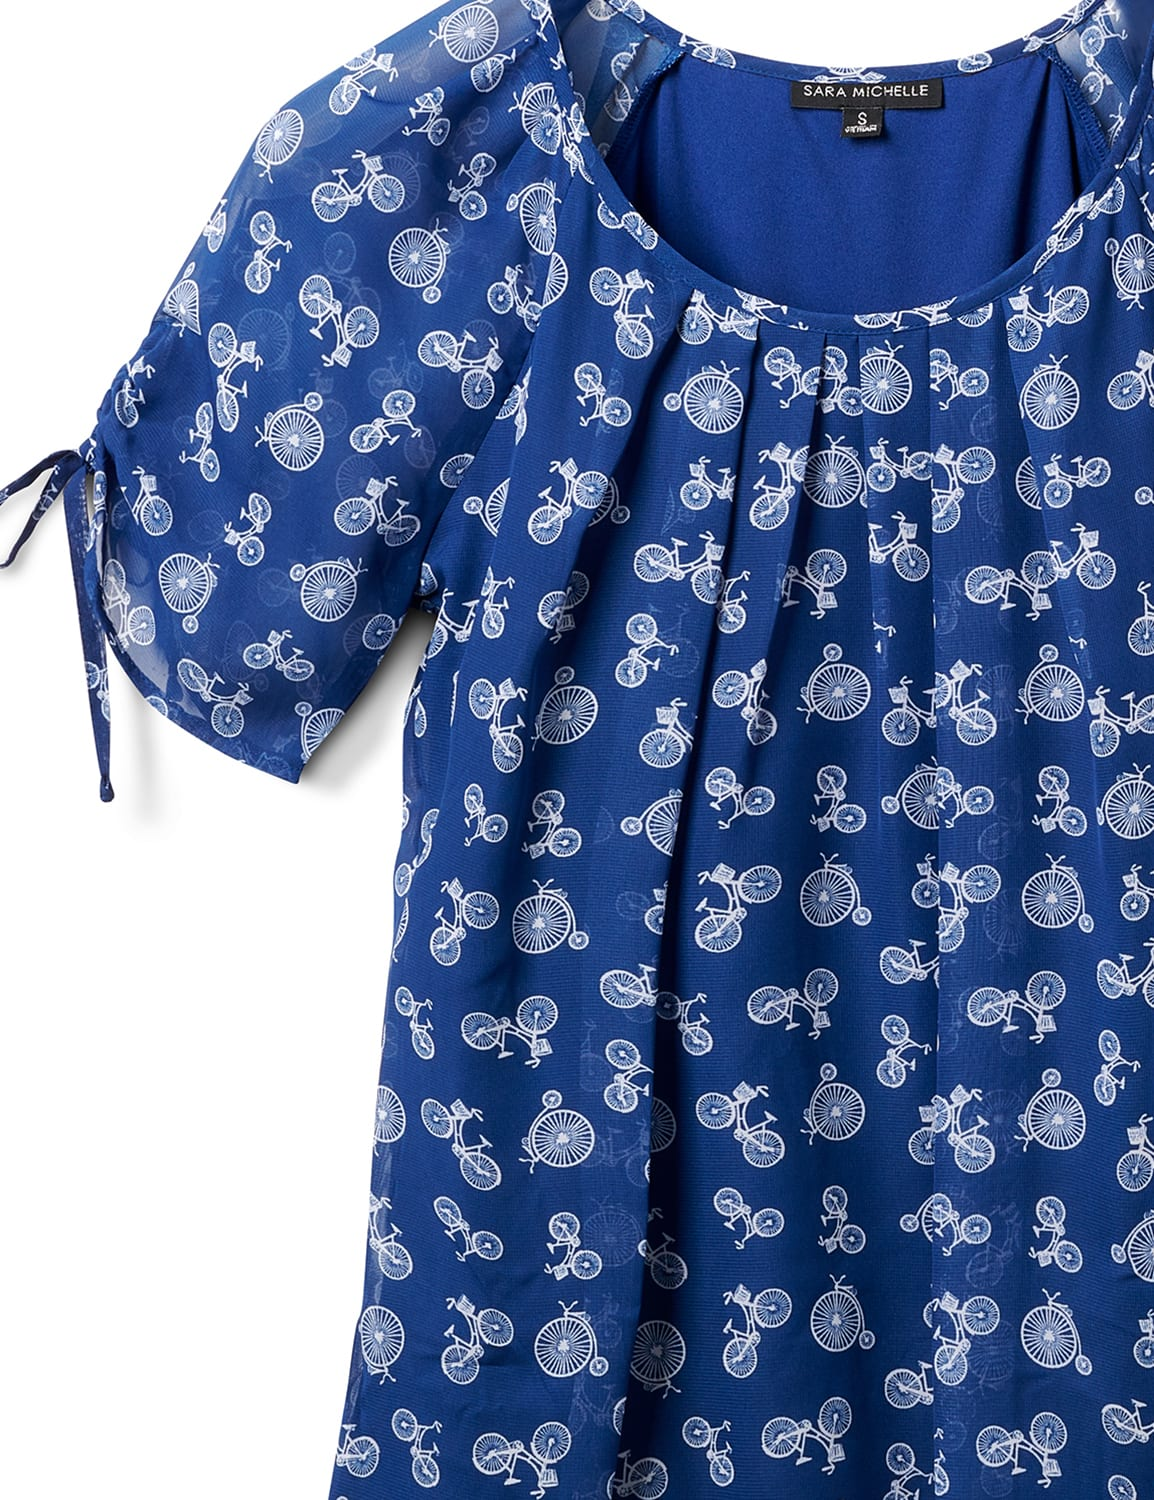 Bicycle Bubble Hem Tie Sleeve Top - Navy/White - Front